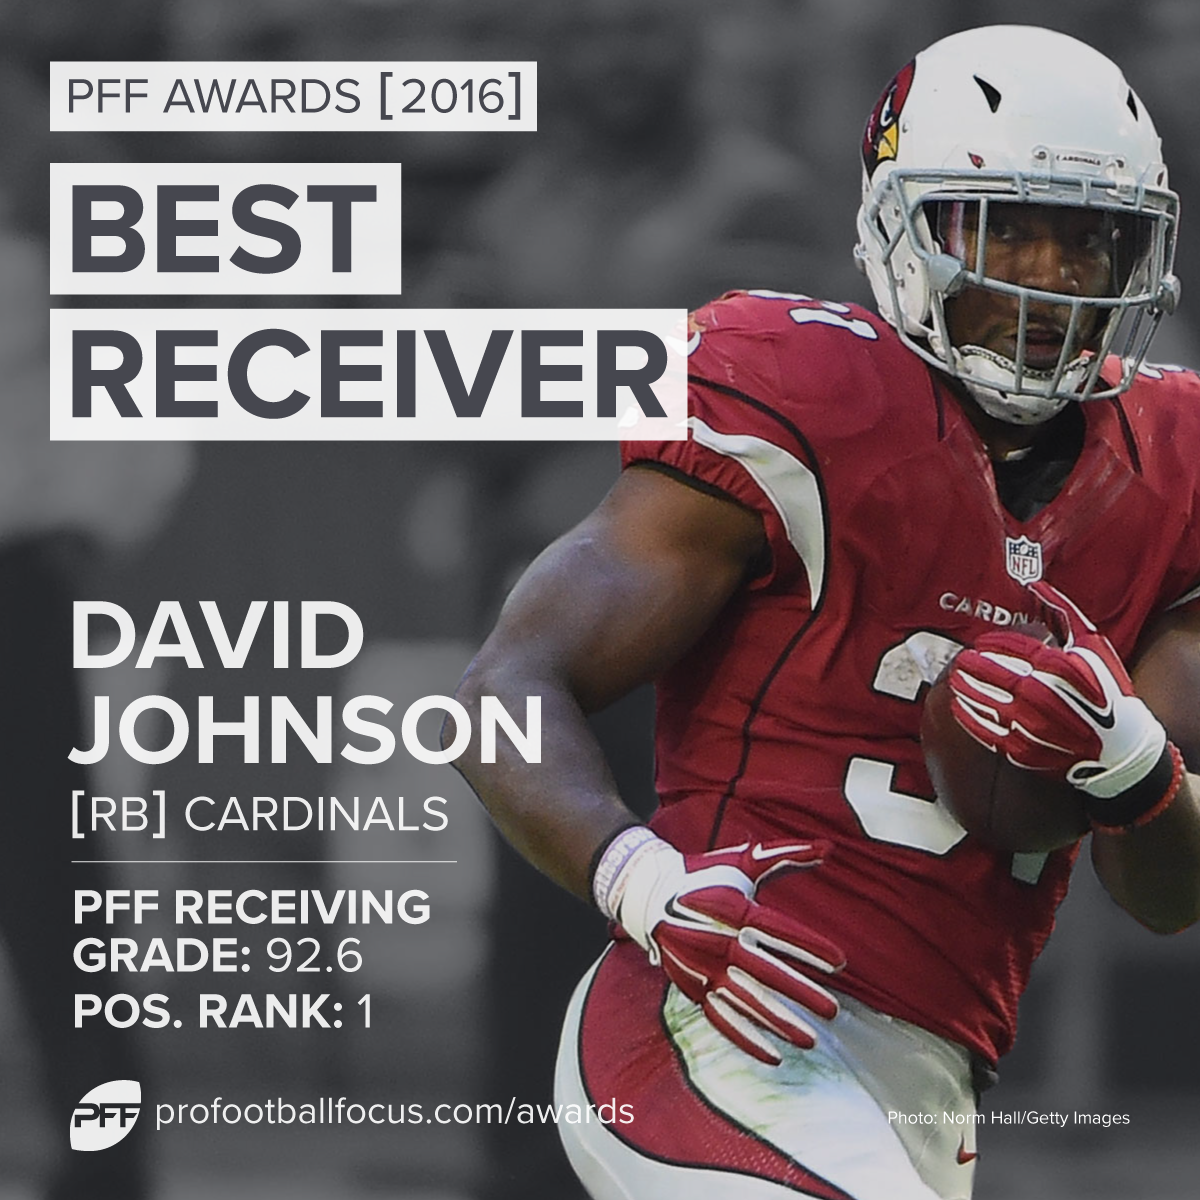 PFF 2016 Best Receiver: David Johnson